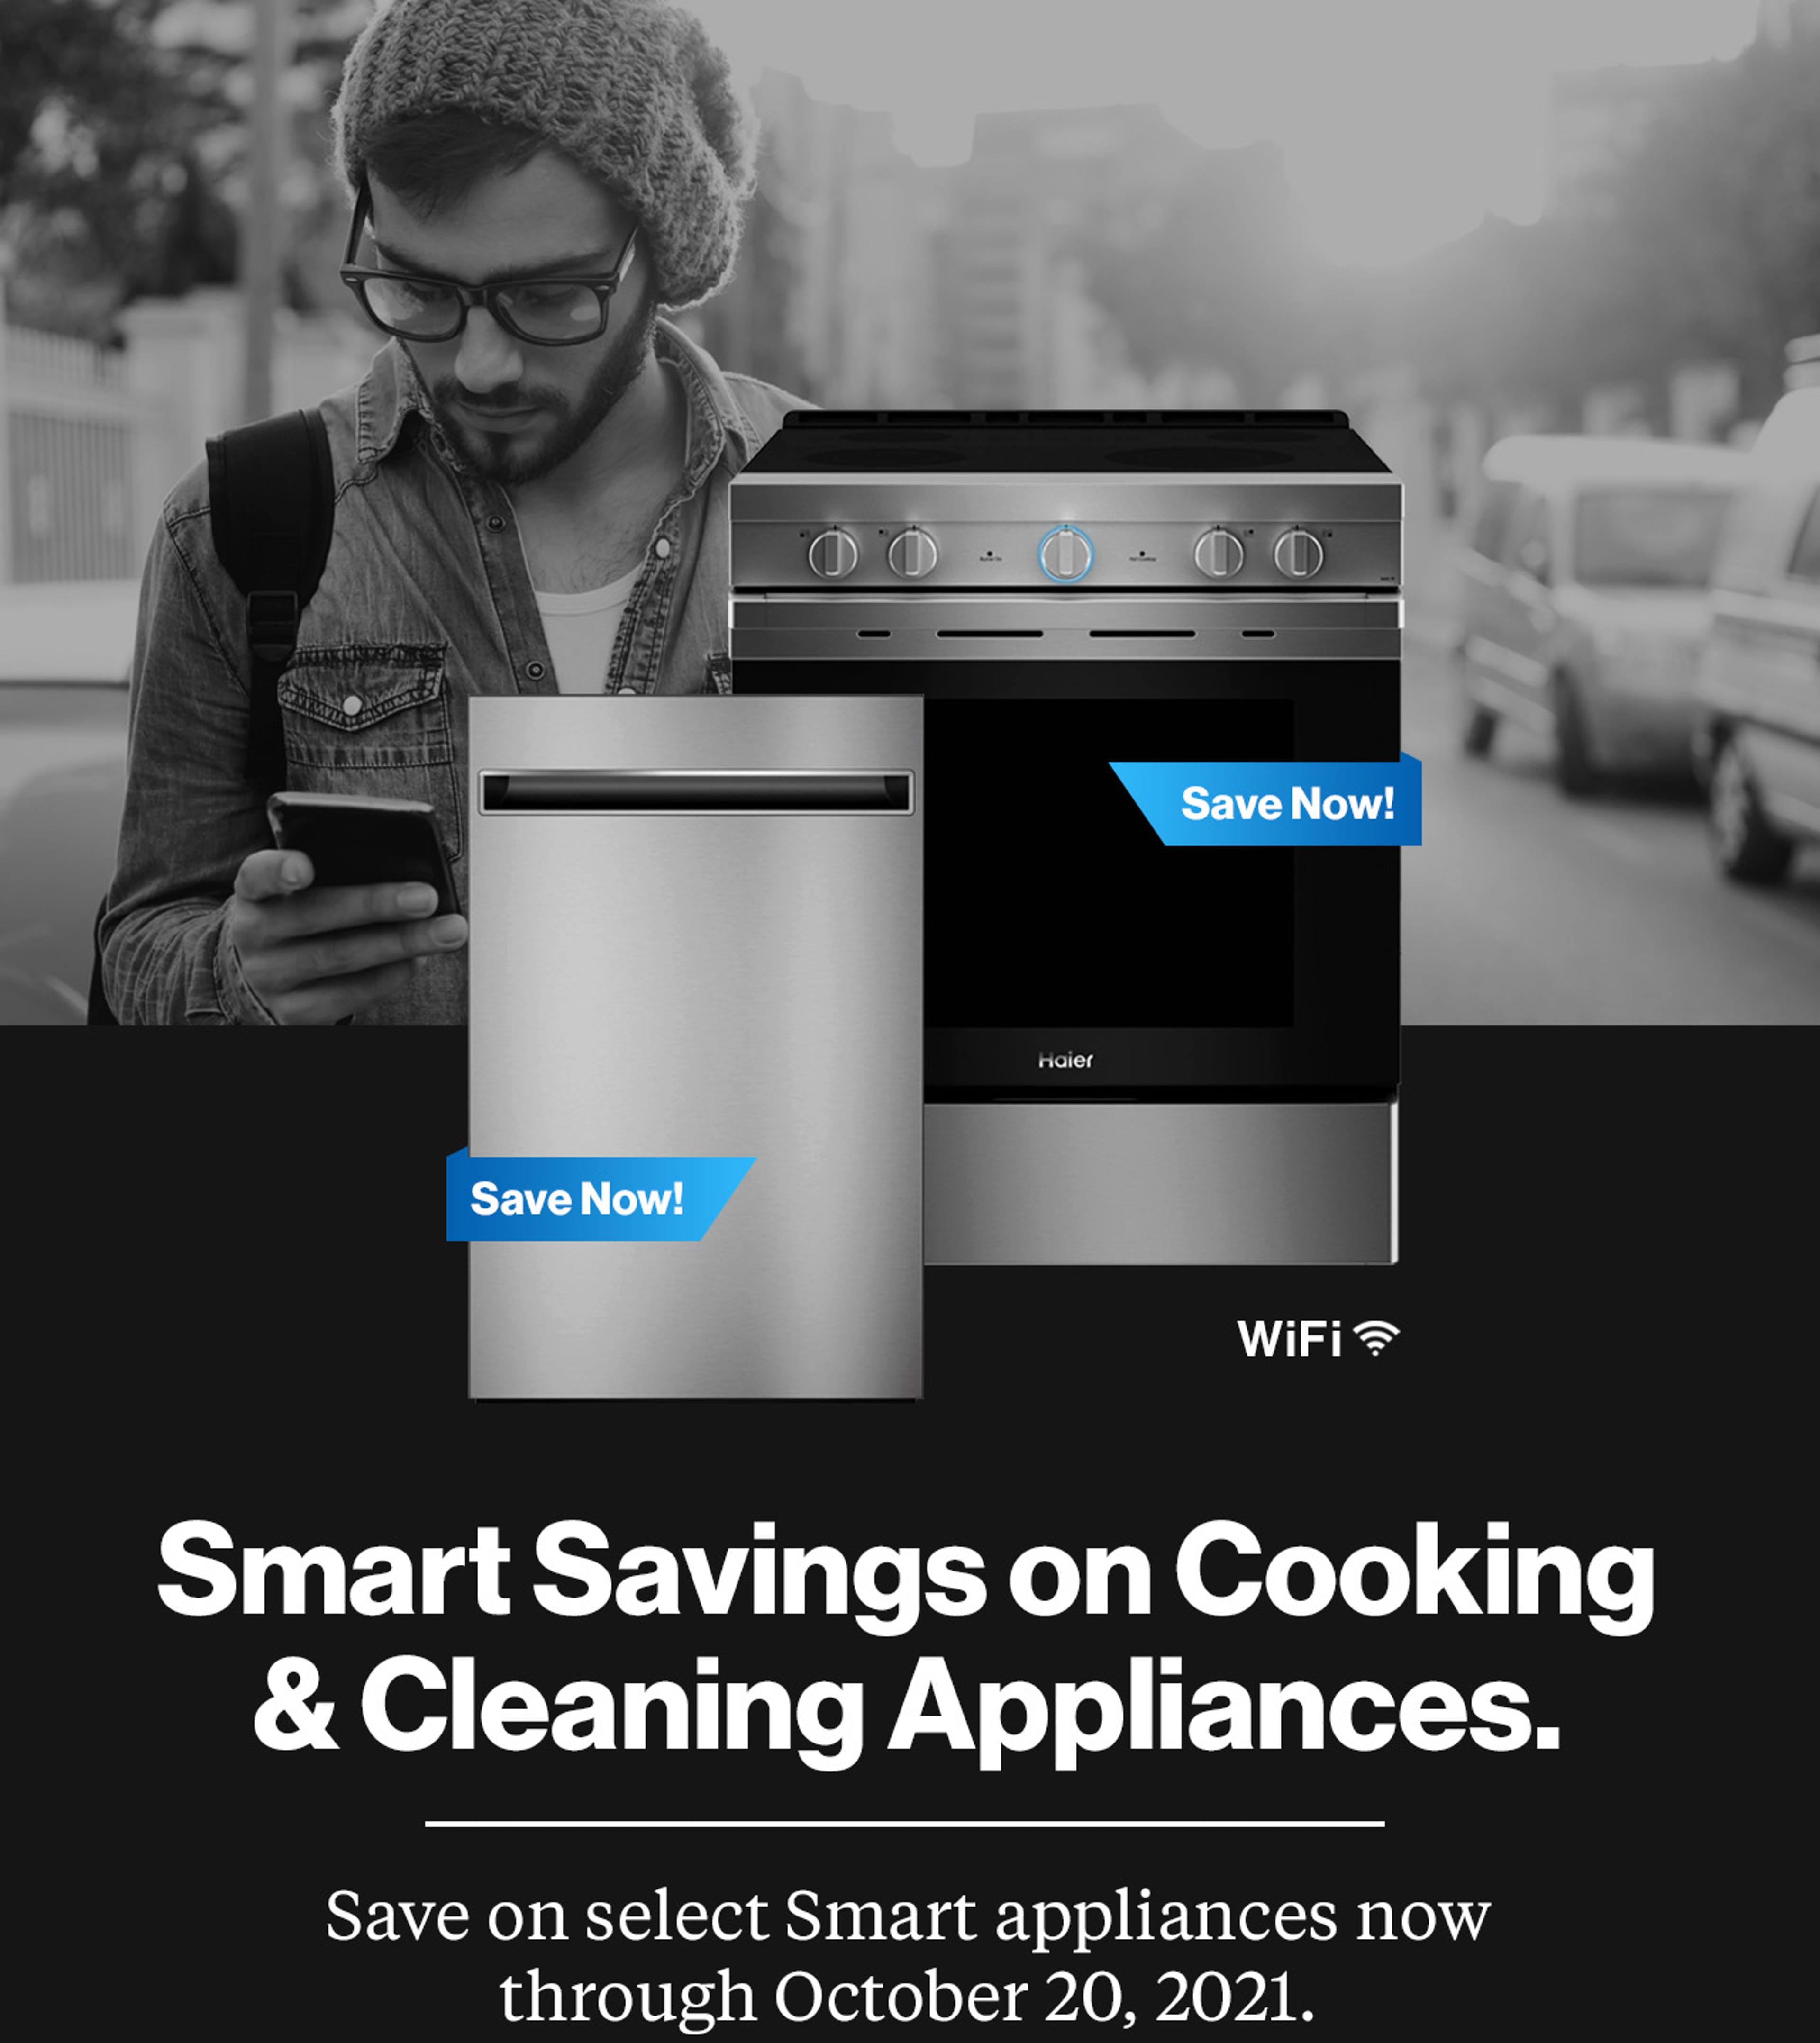 Smart Savings on Cooking and Cleaning Appliances